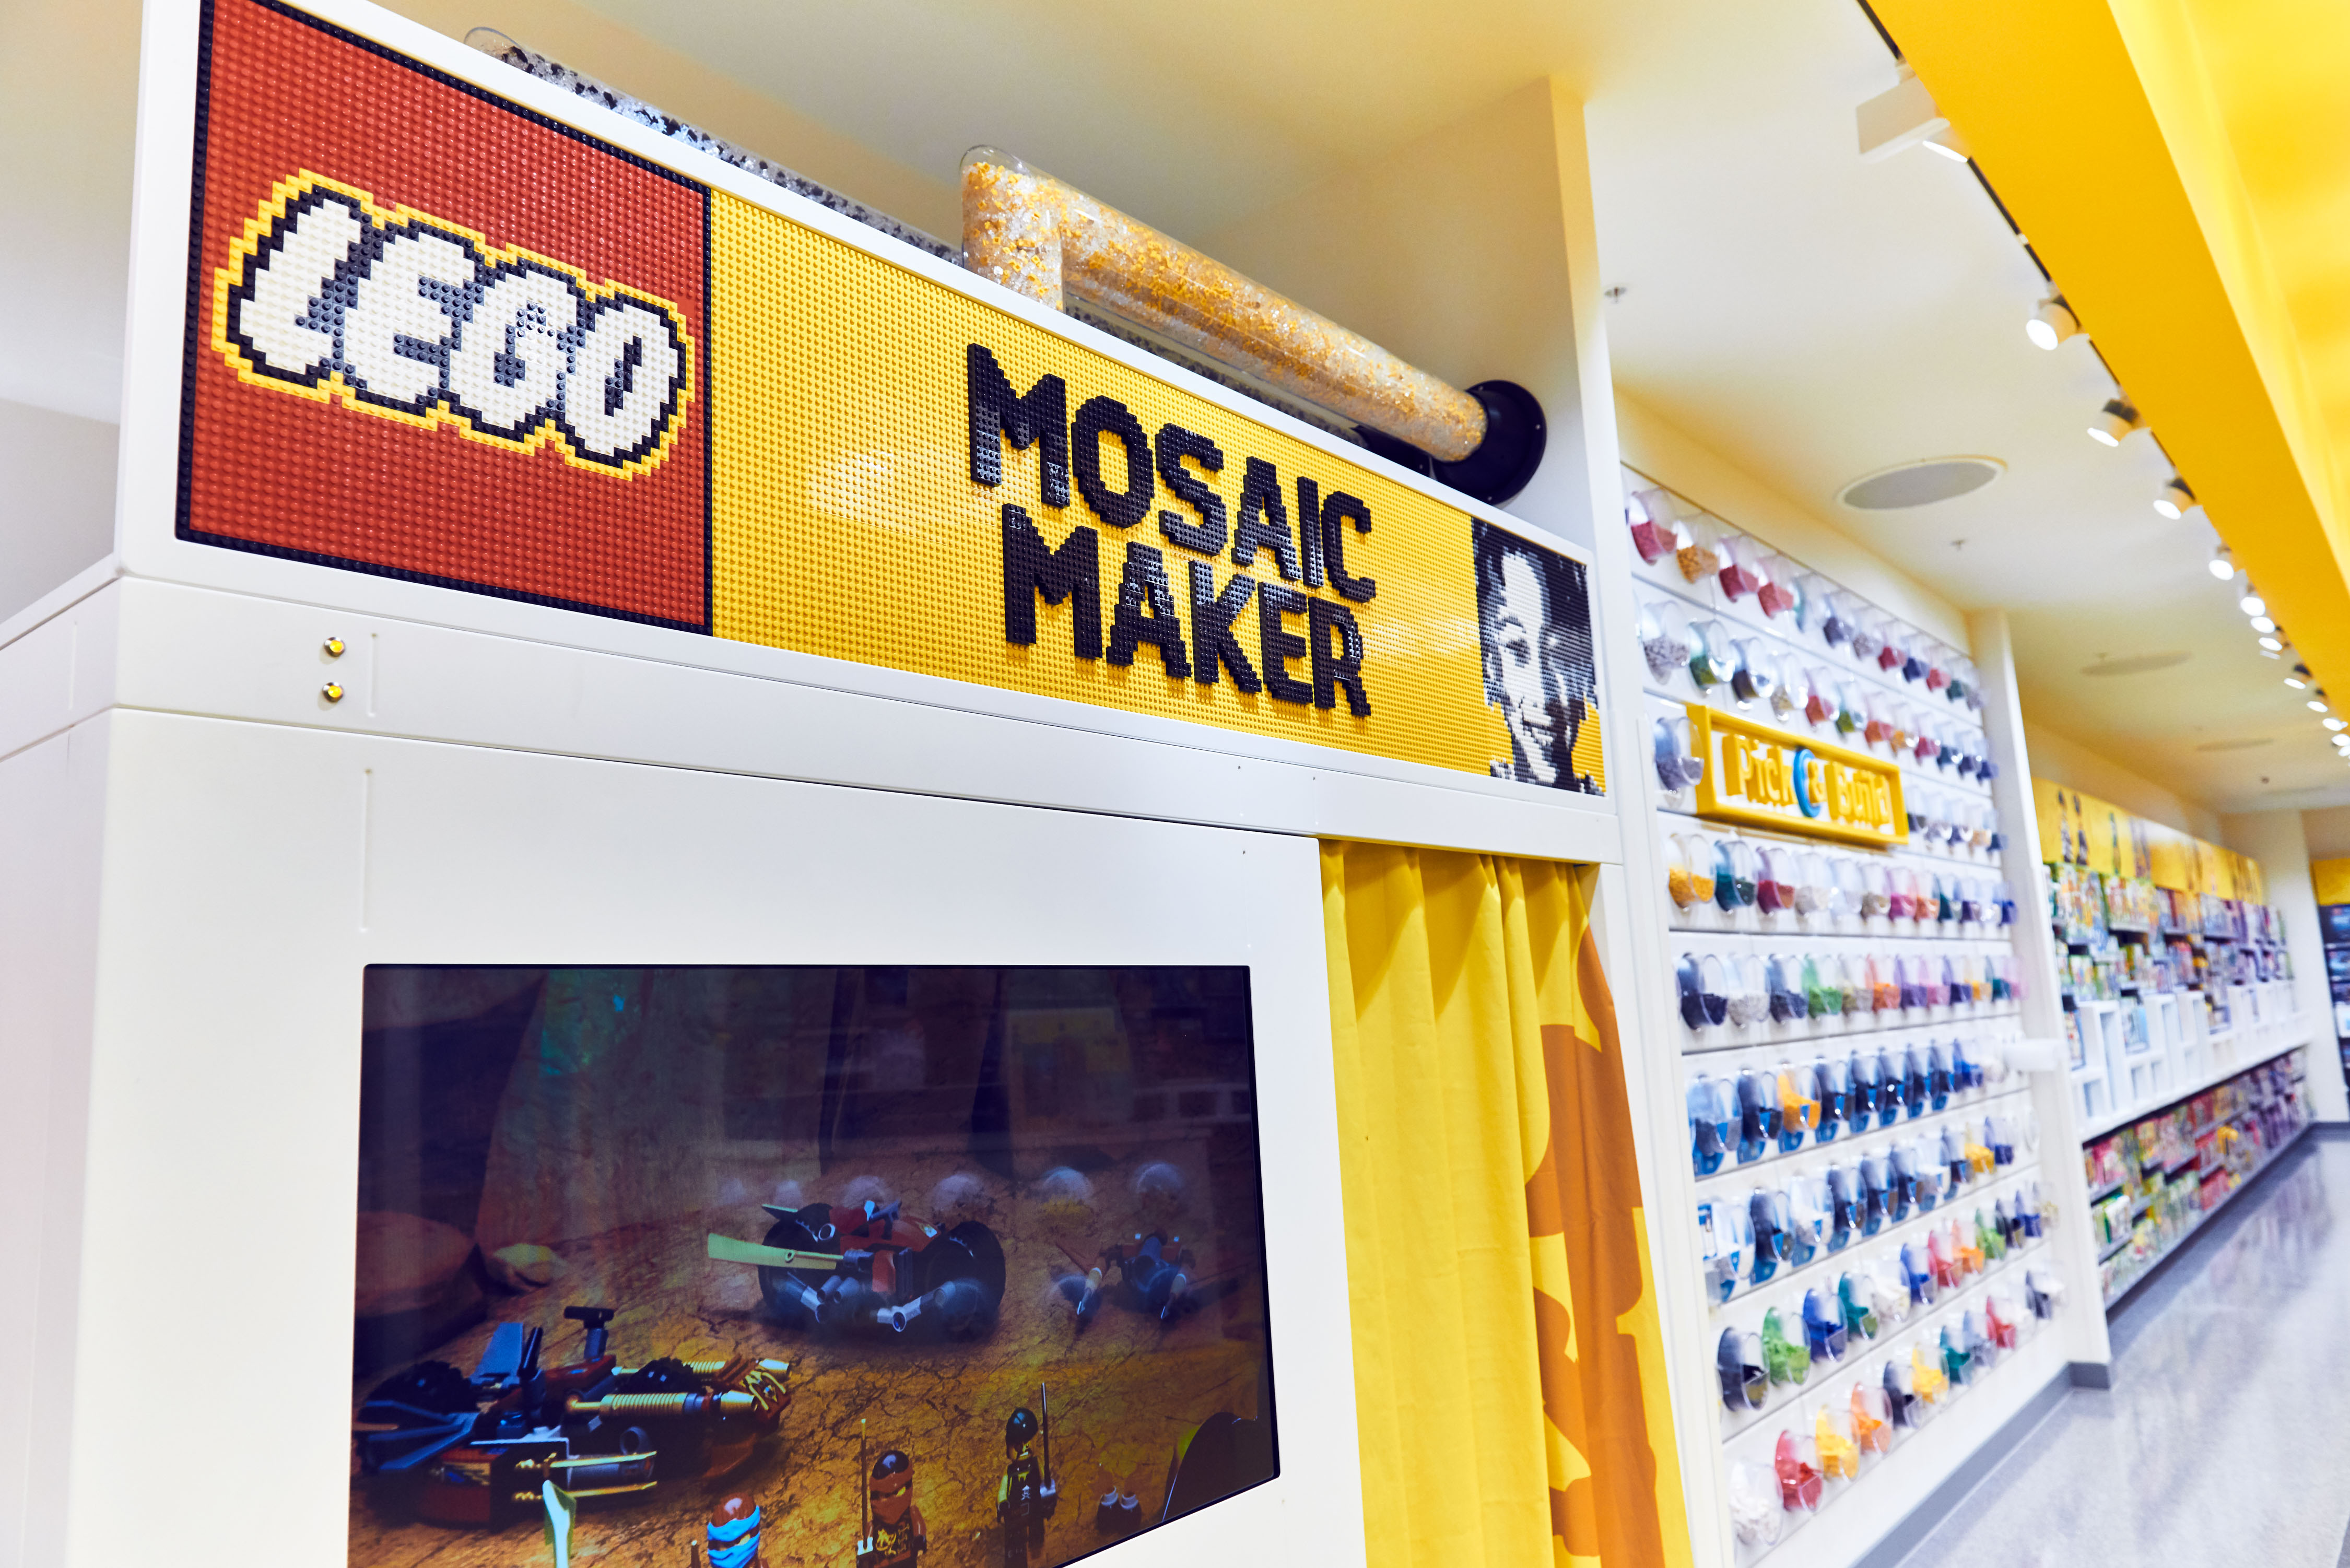 The  Mosaic Maker  offers Legos fans of all ages the opportunity to purchase their very own, one of a kind, personalized Legos mosaic portrait.